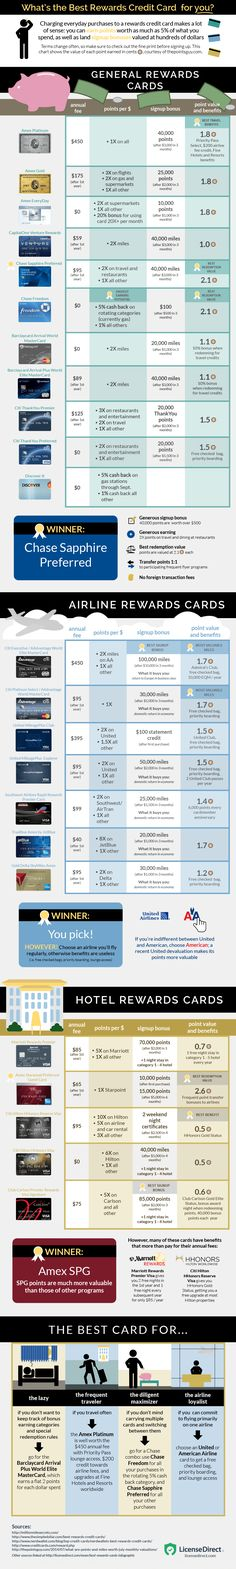 This Graphic Compares 25 of the Most Popular Rewards Credit Cards